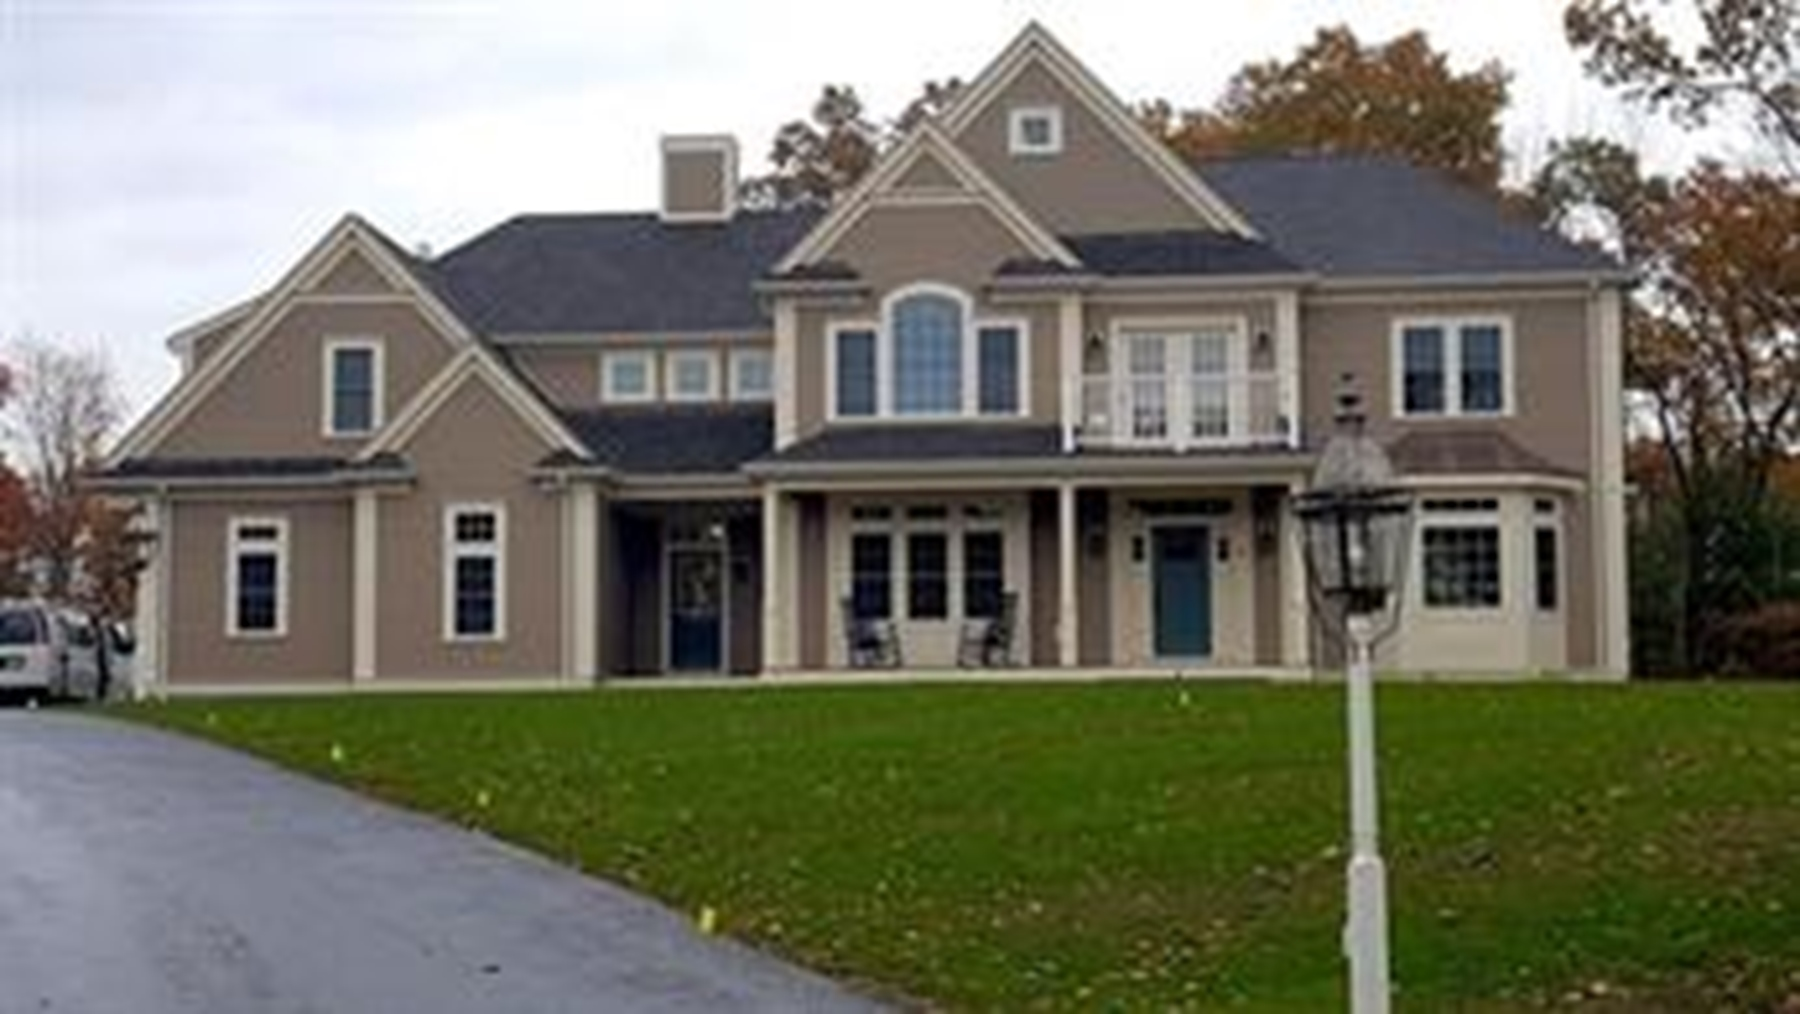 Casa Unifamiliar por un Venta en Highland Park New Construction Elegant Designs Lot 22 Stoney Brook Road Hopkinton, Massachusetts 01748 Estados Unidos